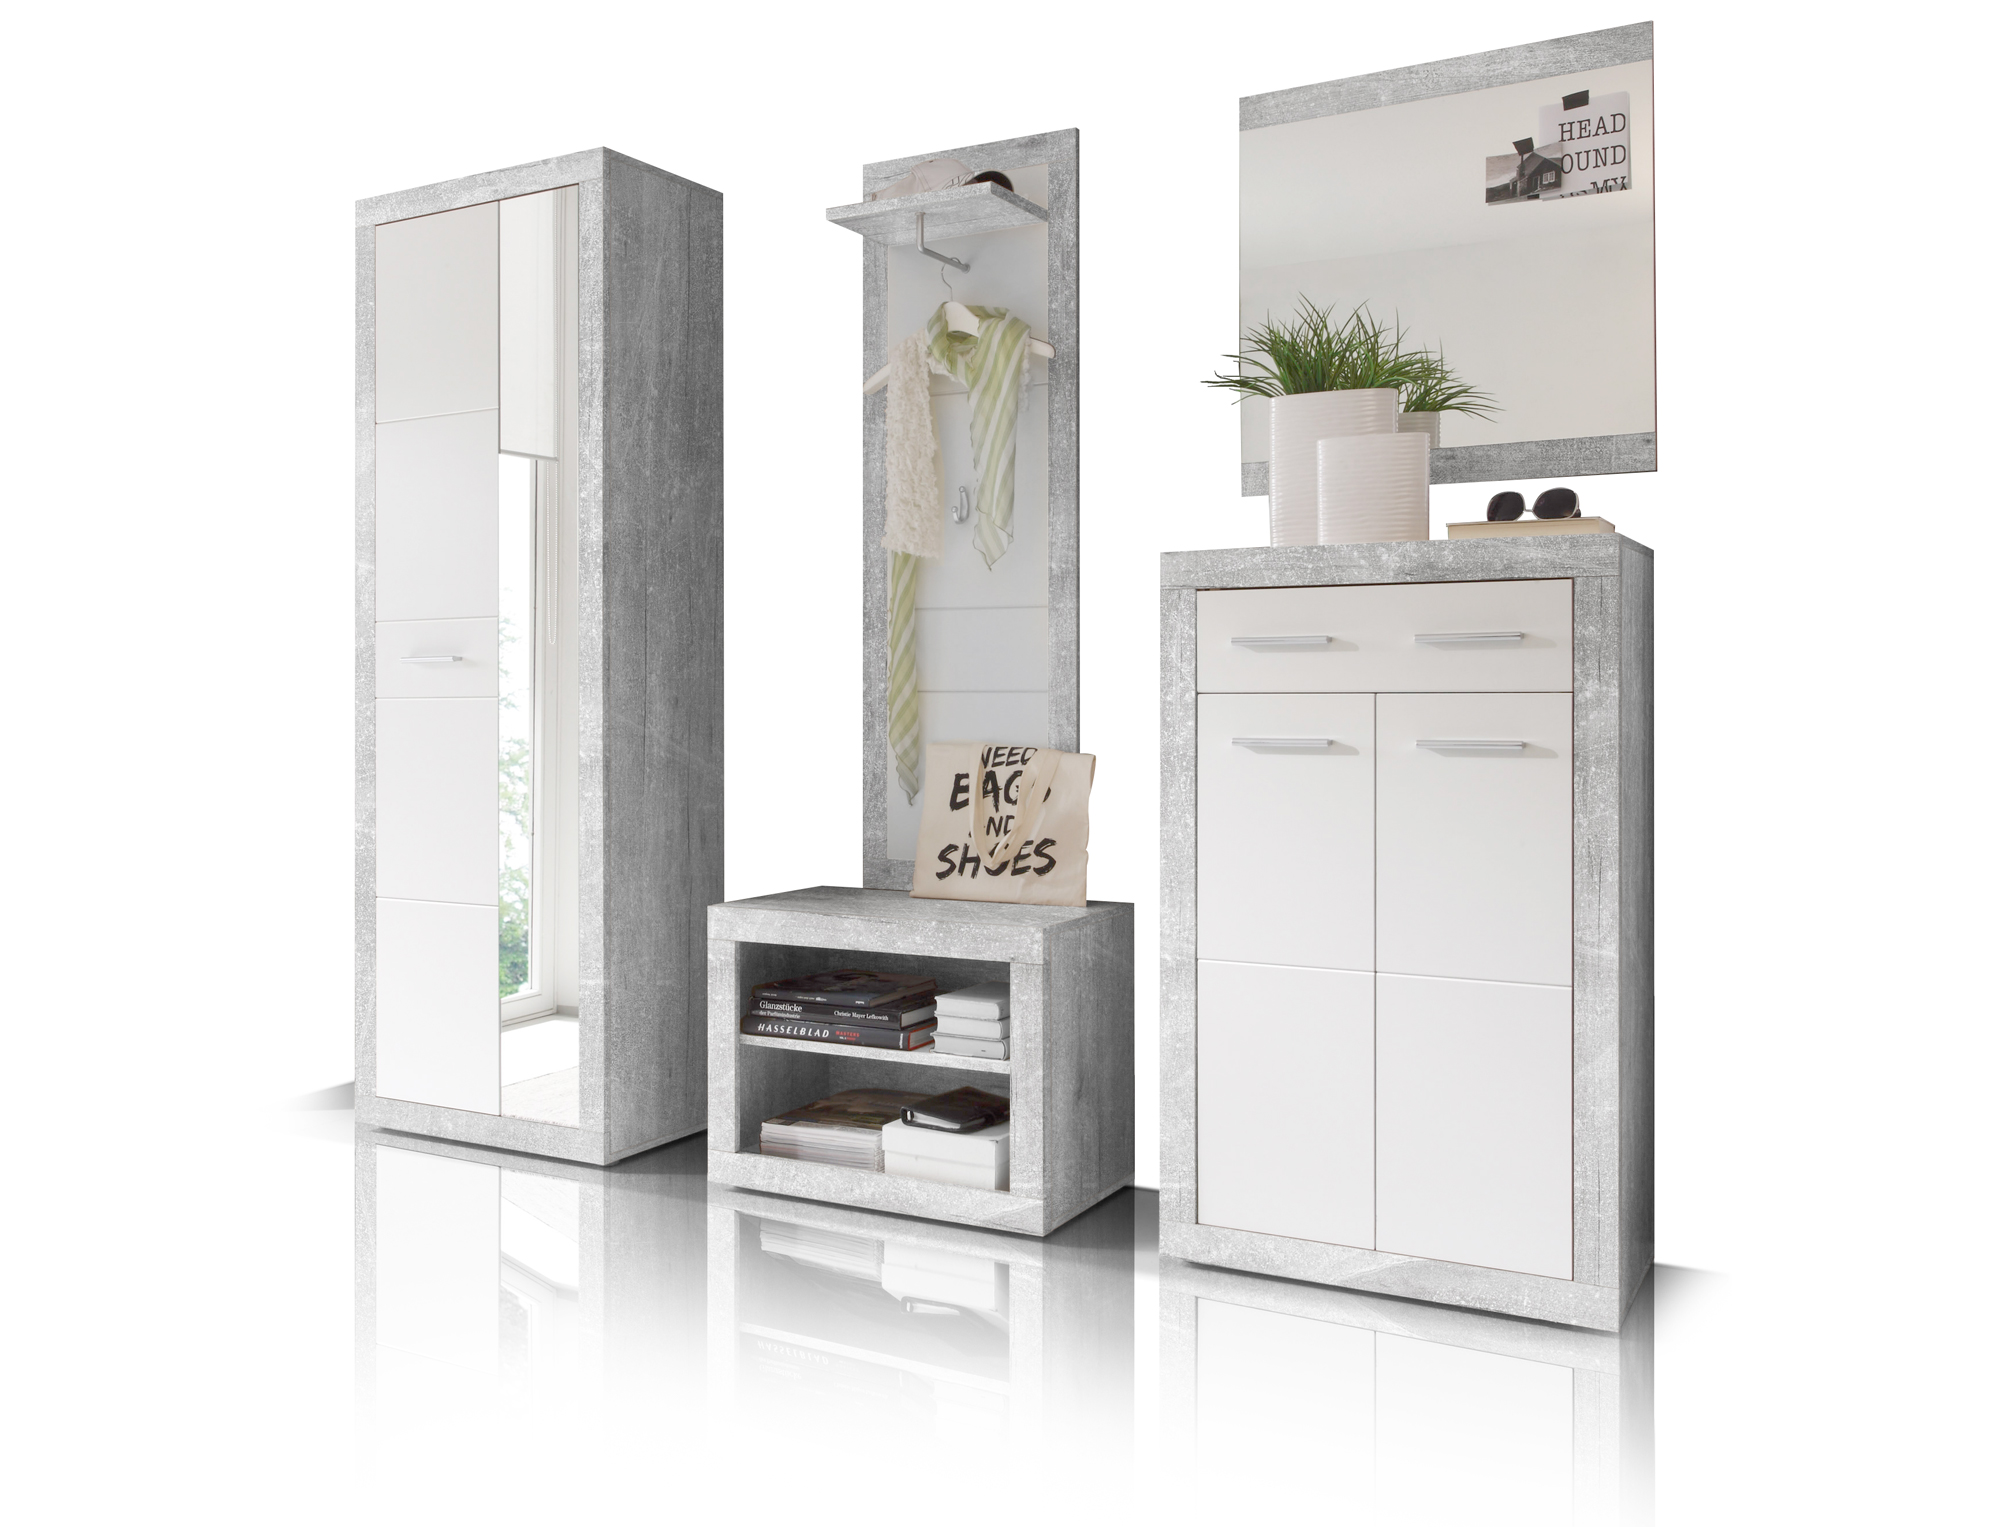 garderobe beton veenendaalcultureel. Black Bedroom Furniture Sets. Home Design Ideas